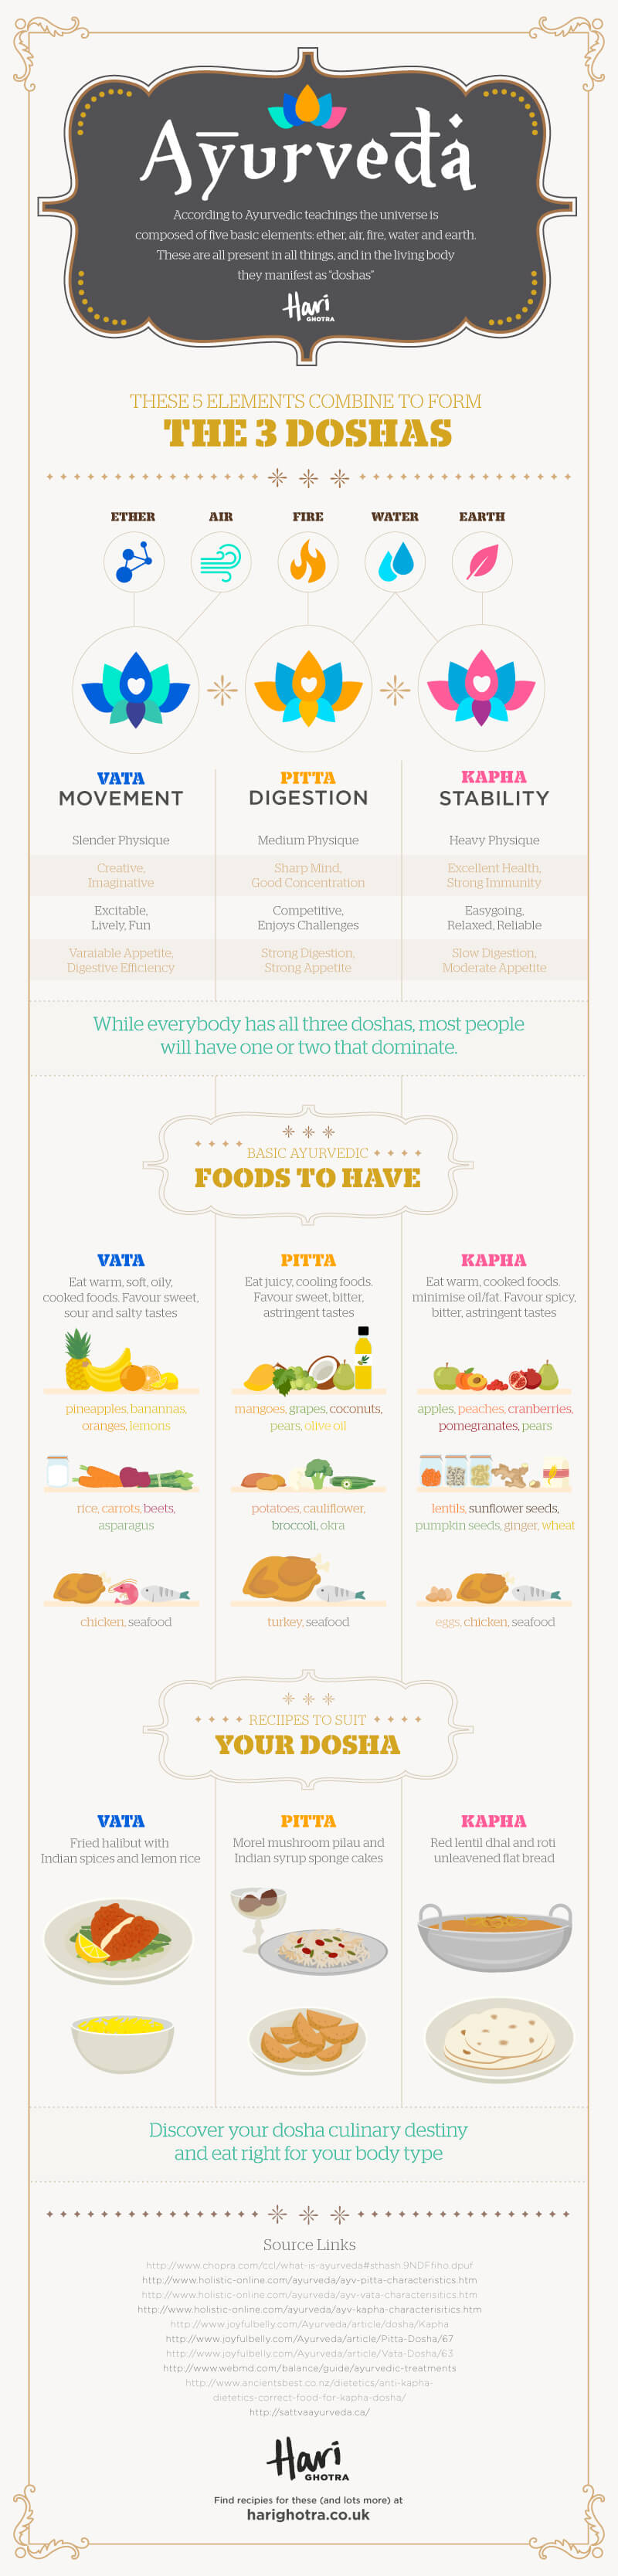 Ayurveda infographic July 2015